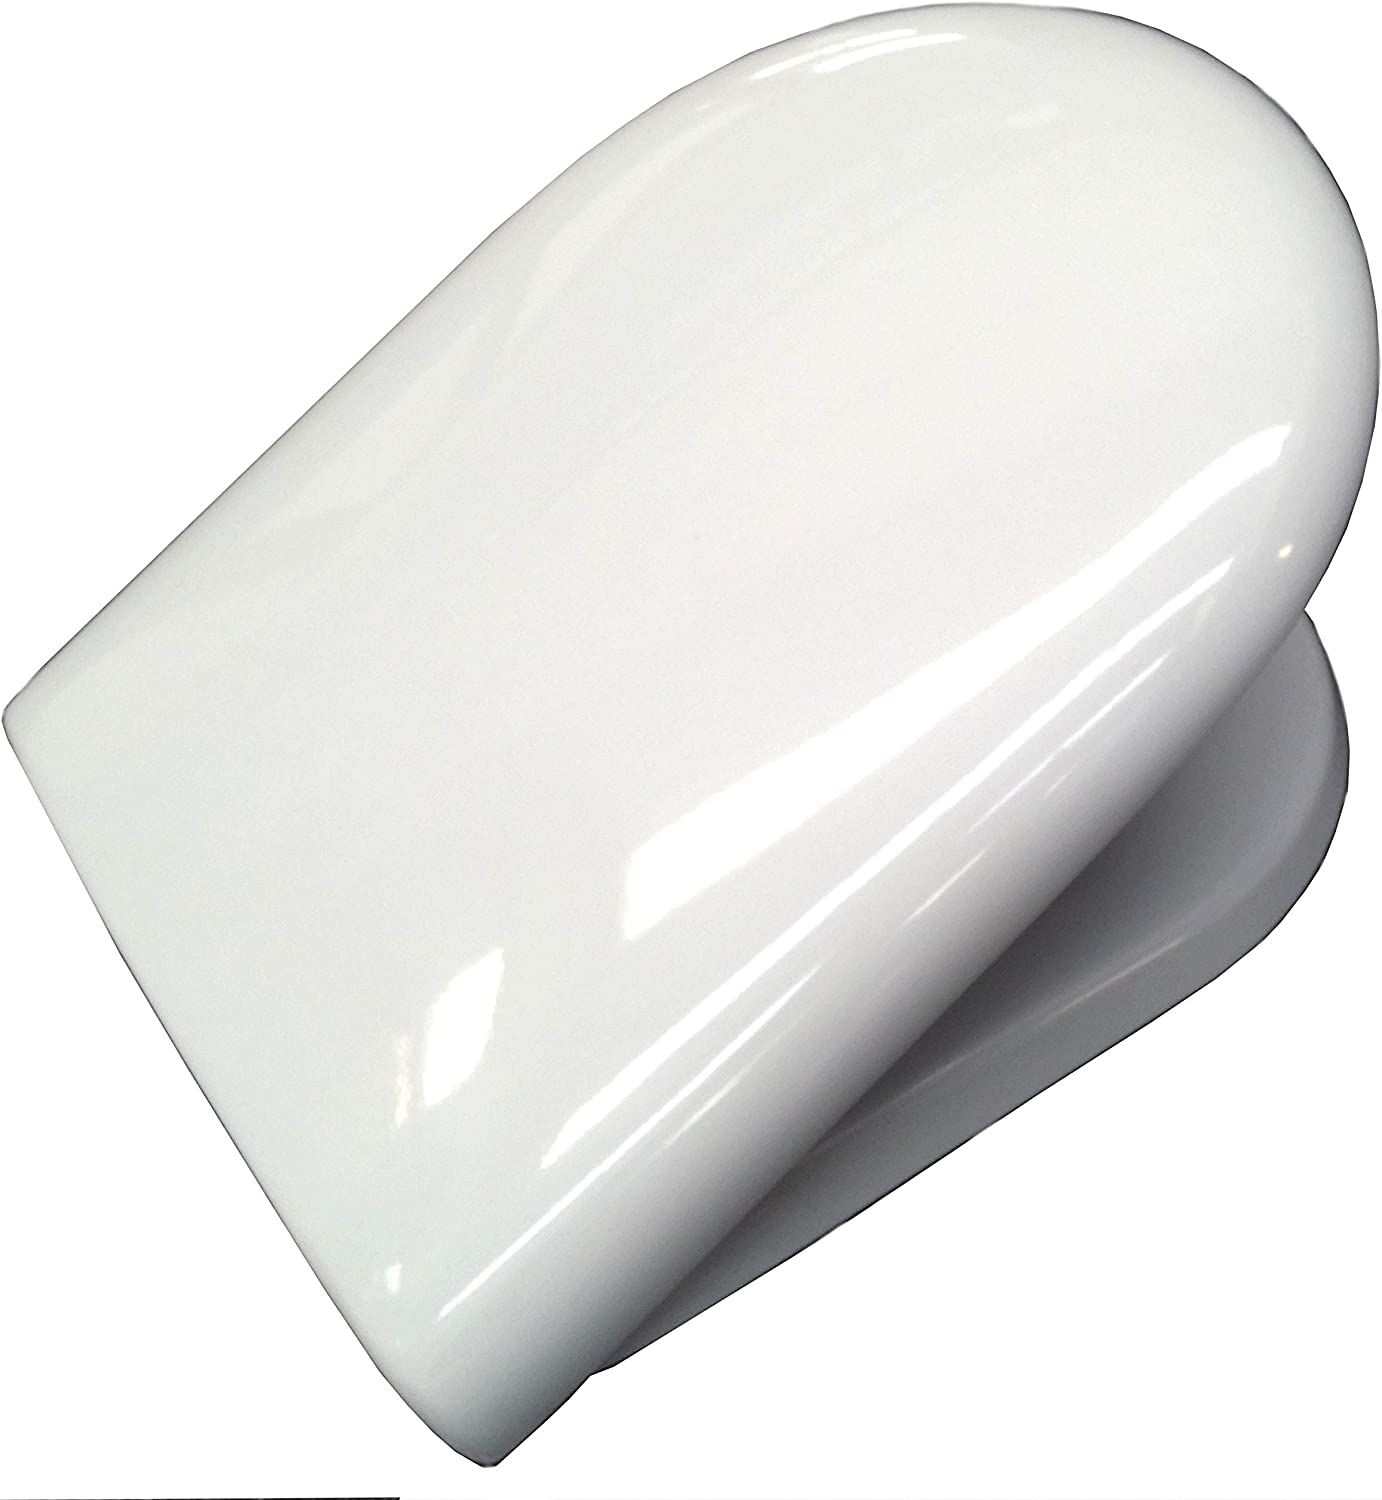 Thermoset Toilet Seat Relax Flaminia in Wrap?–?ACB ercos Silver